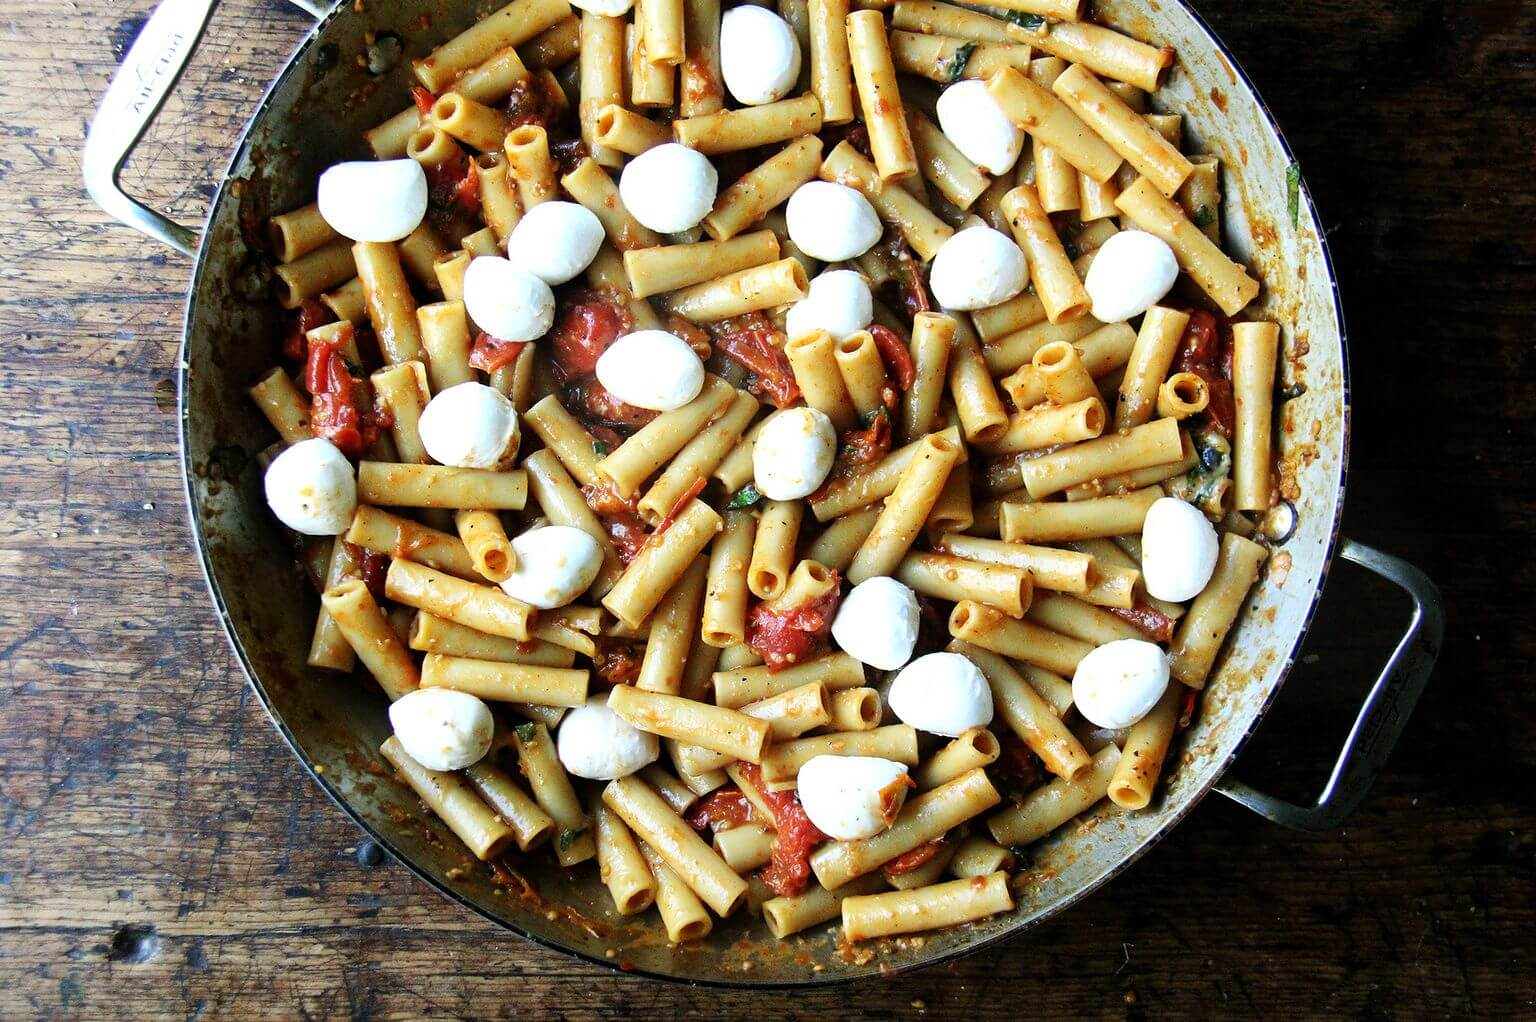 A large skillet of one-pan baked ziti topped with mozzarella.